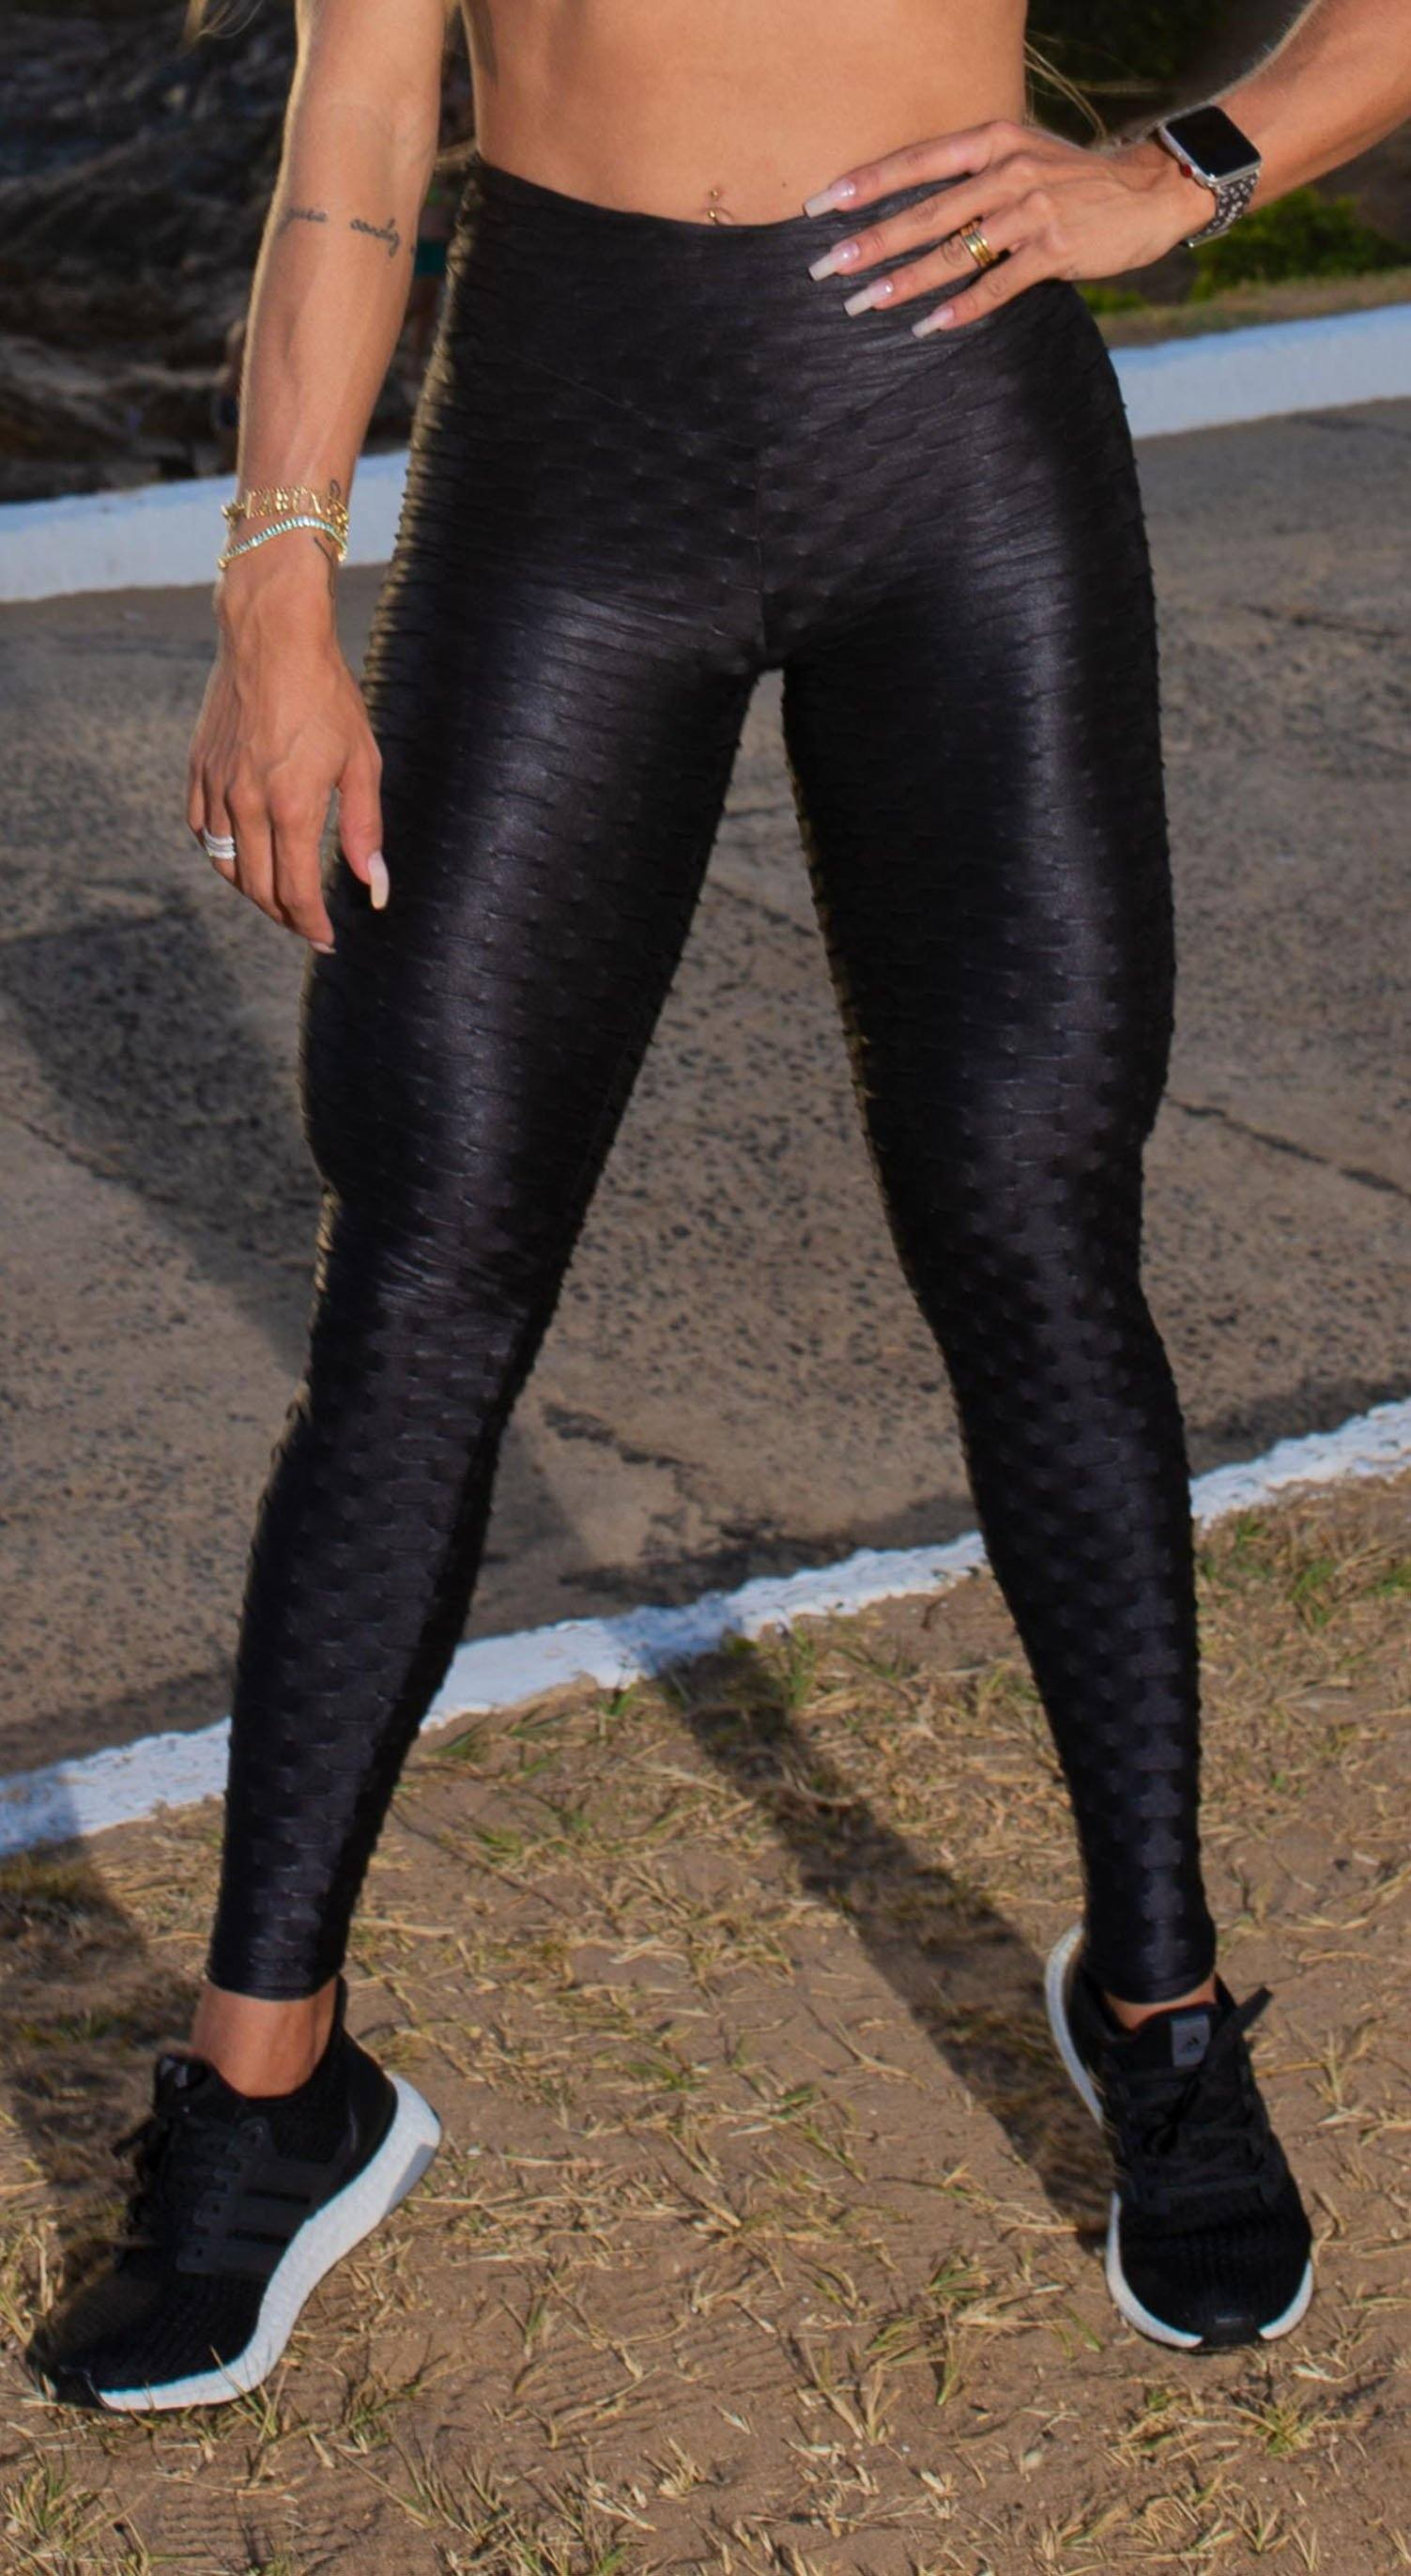 Brazilian Legging - High Waist Anti Cellulite Honeycomb Textured Scrunch Booty Shiny Black